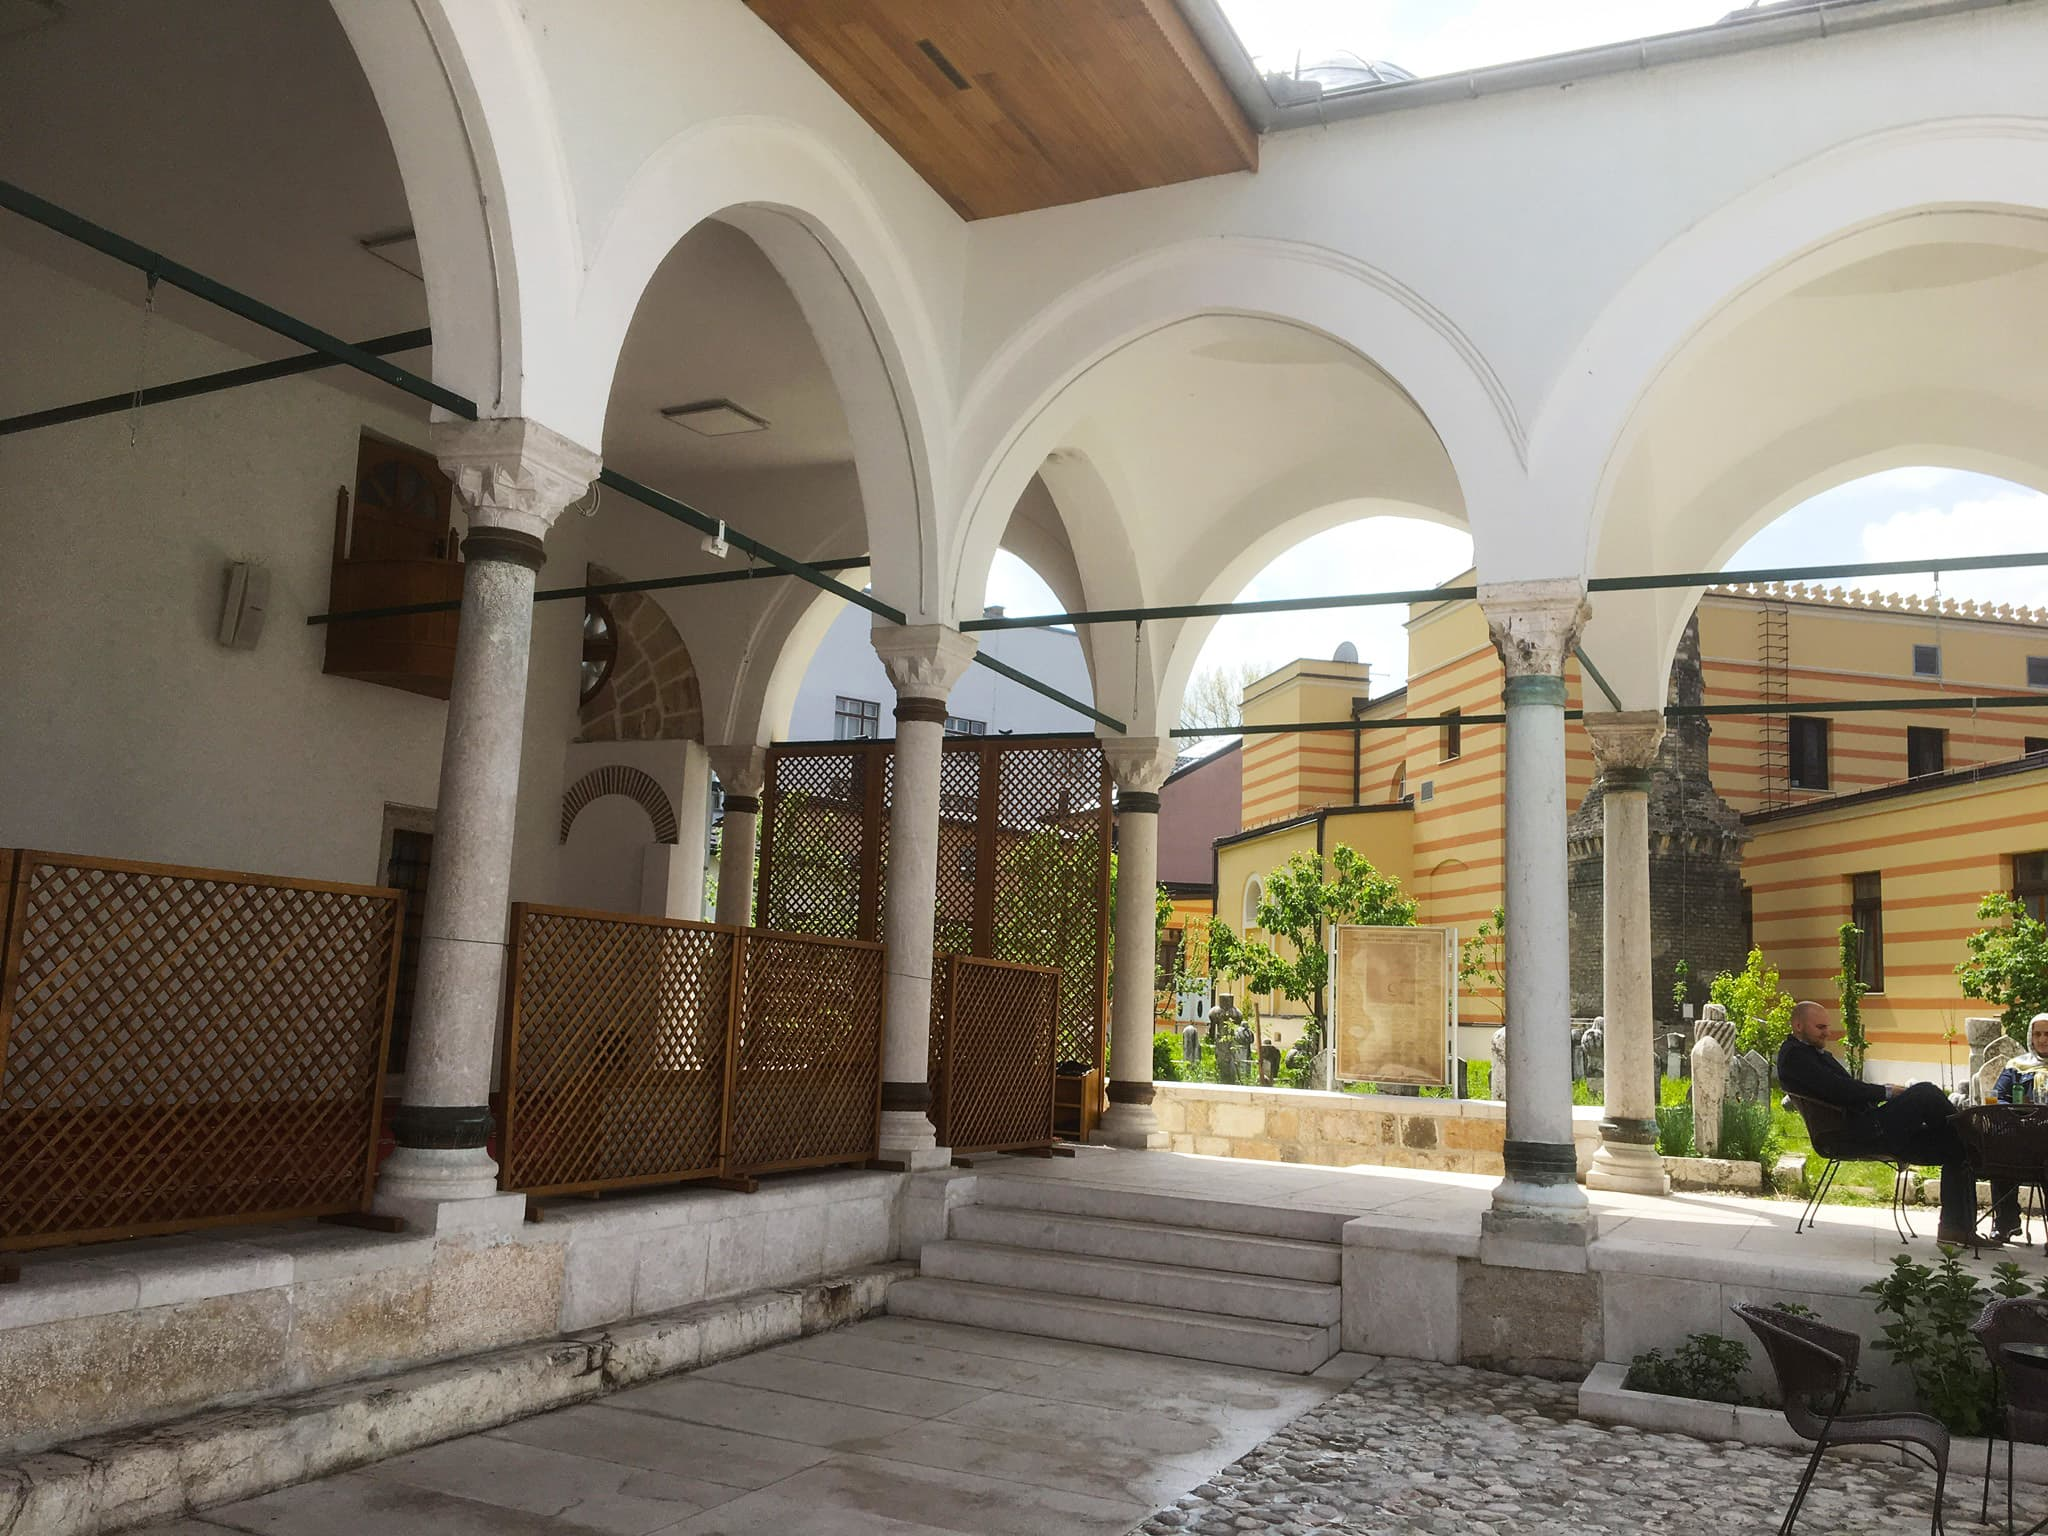 The courtyard of Sarajevo's oldest Ottoman mosque.